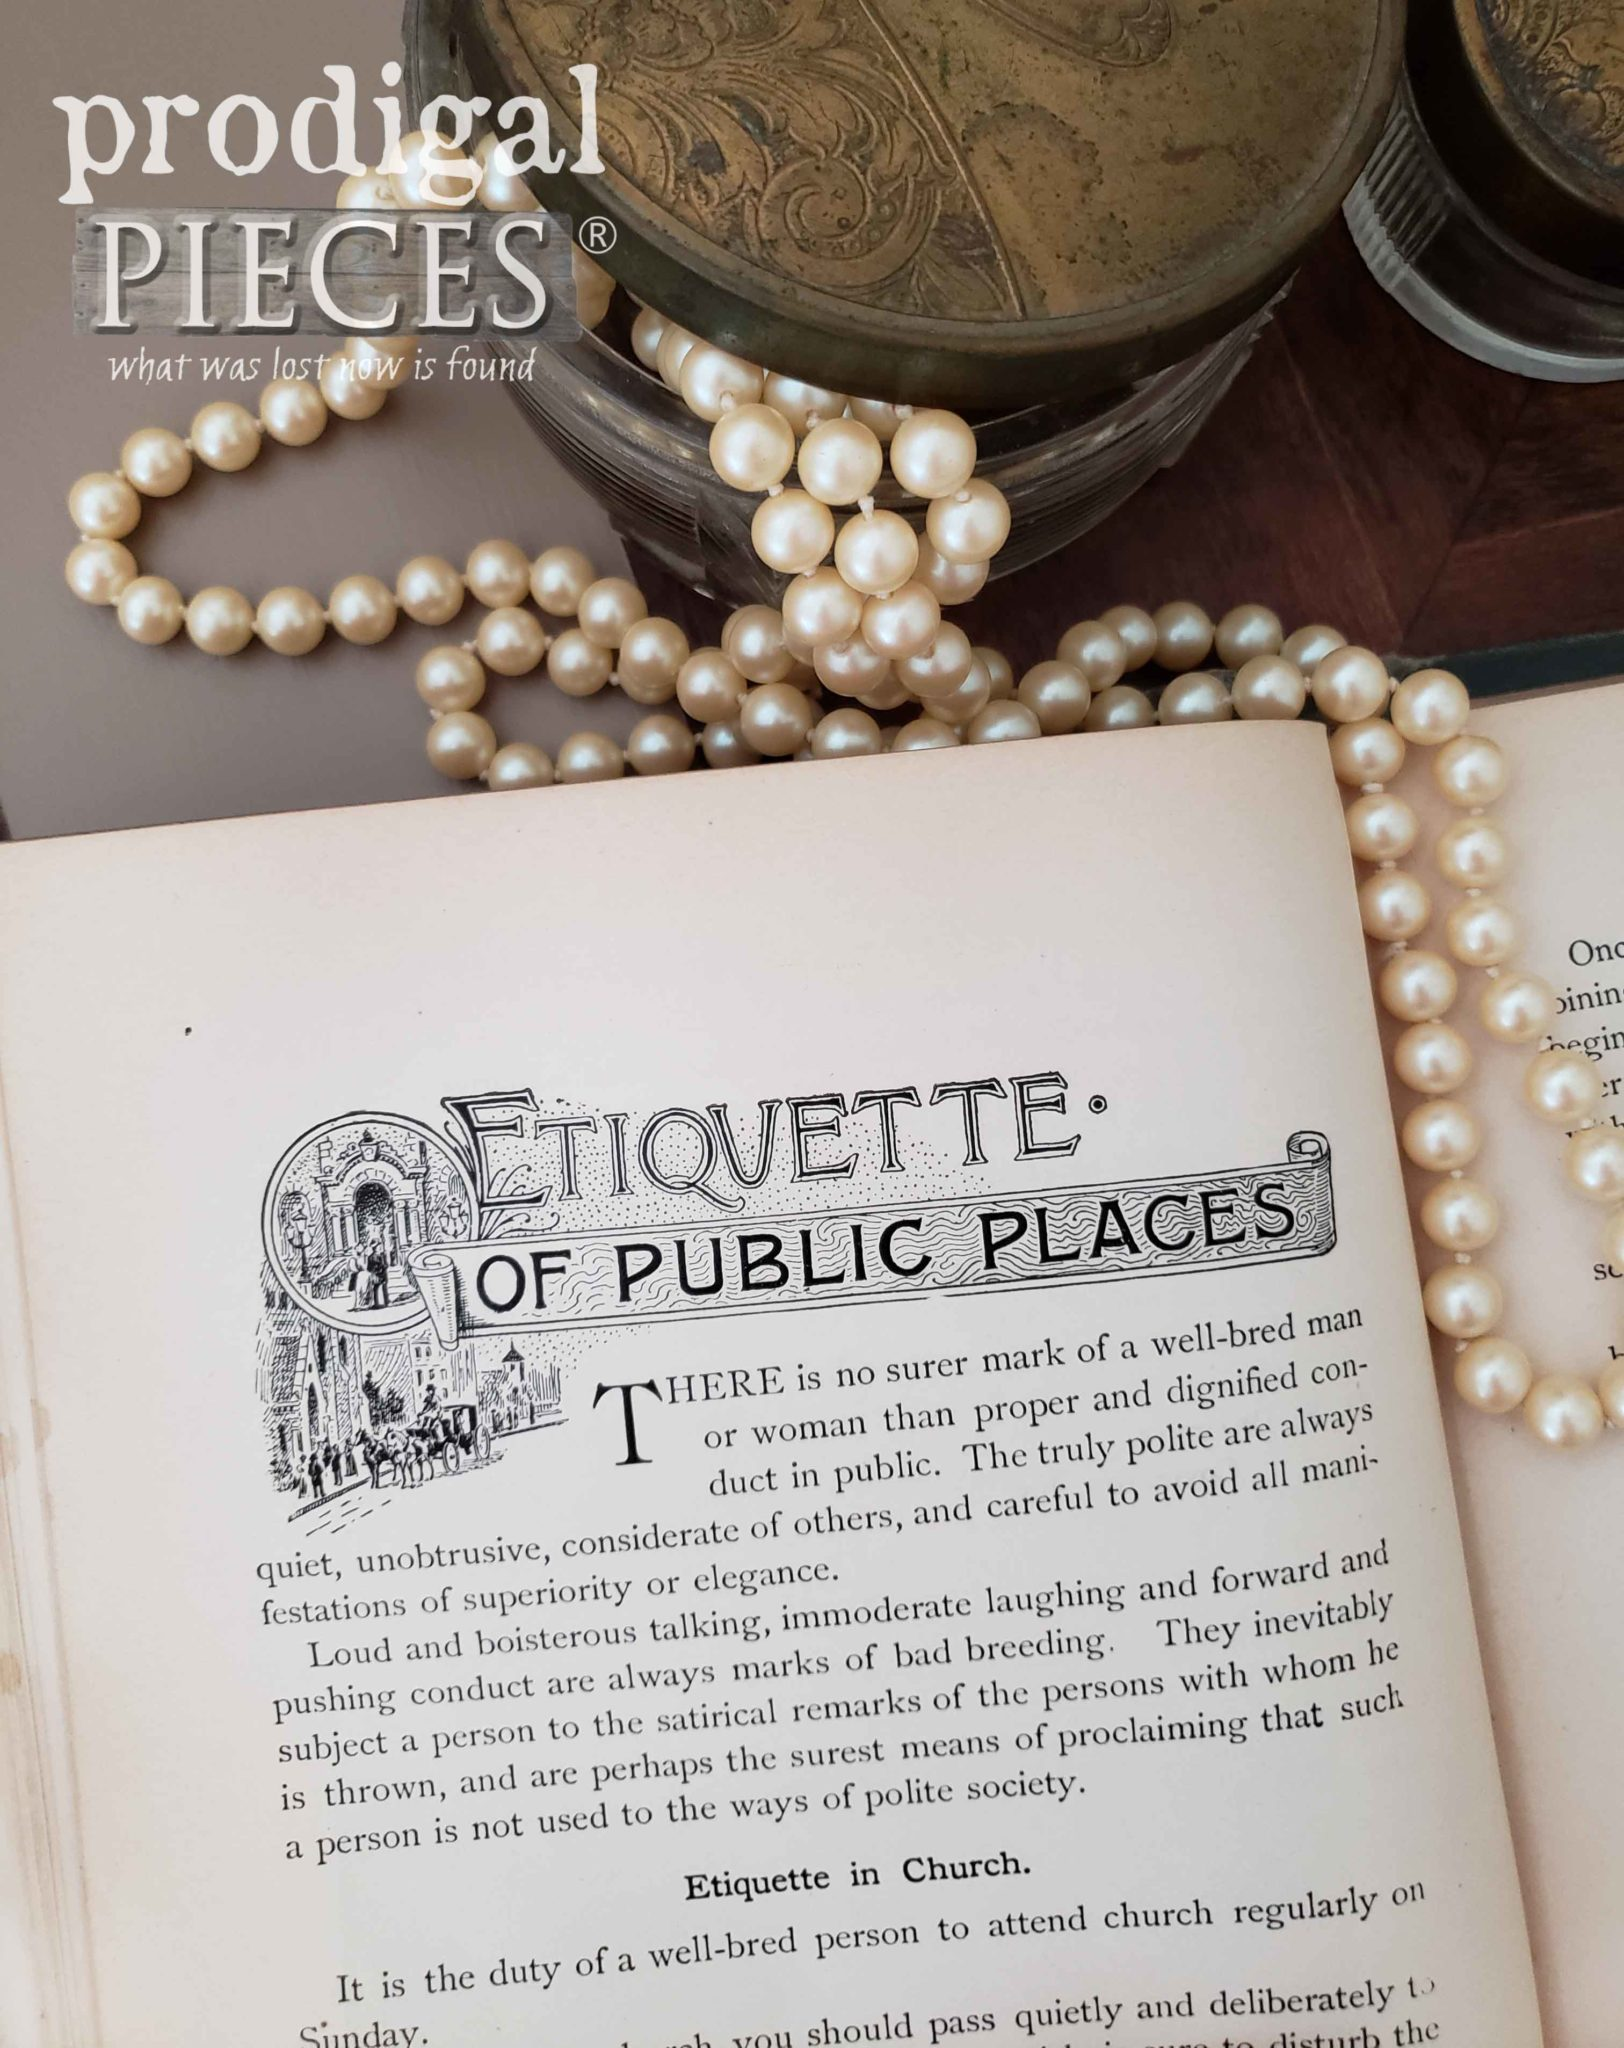 Etiquette of Public Places Page in Antique Book by Prodigal Pieces | prodigalpieces.com